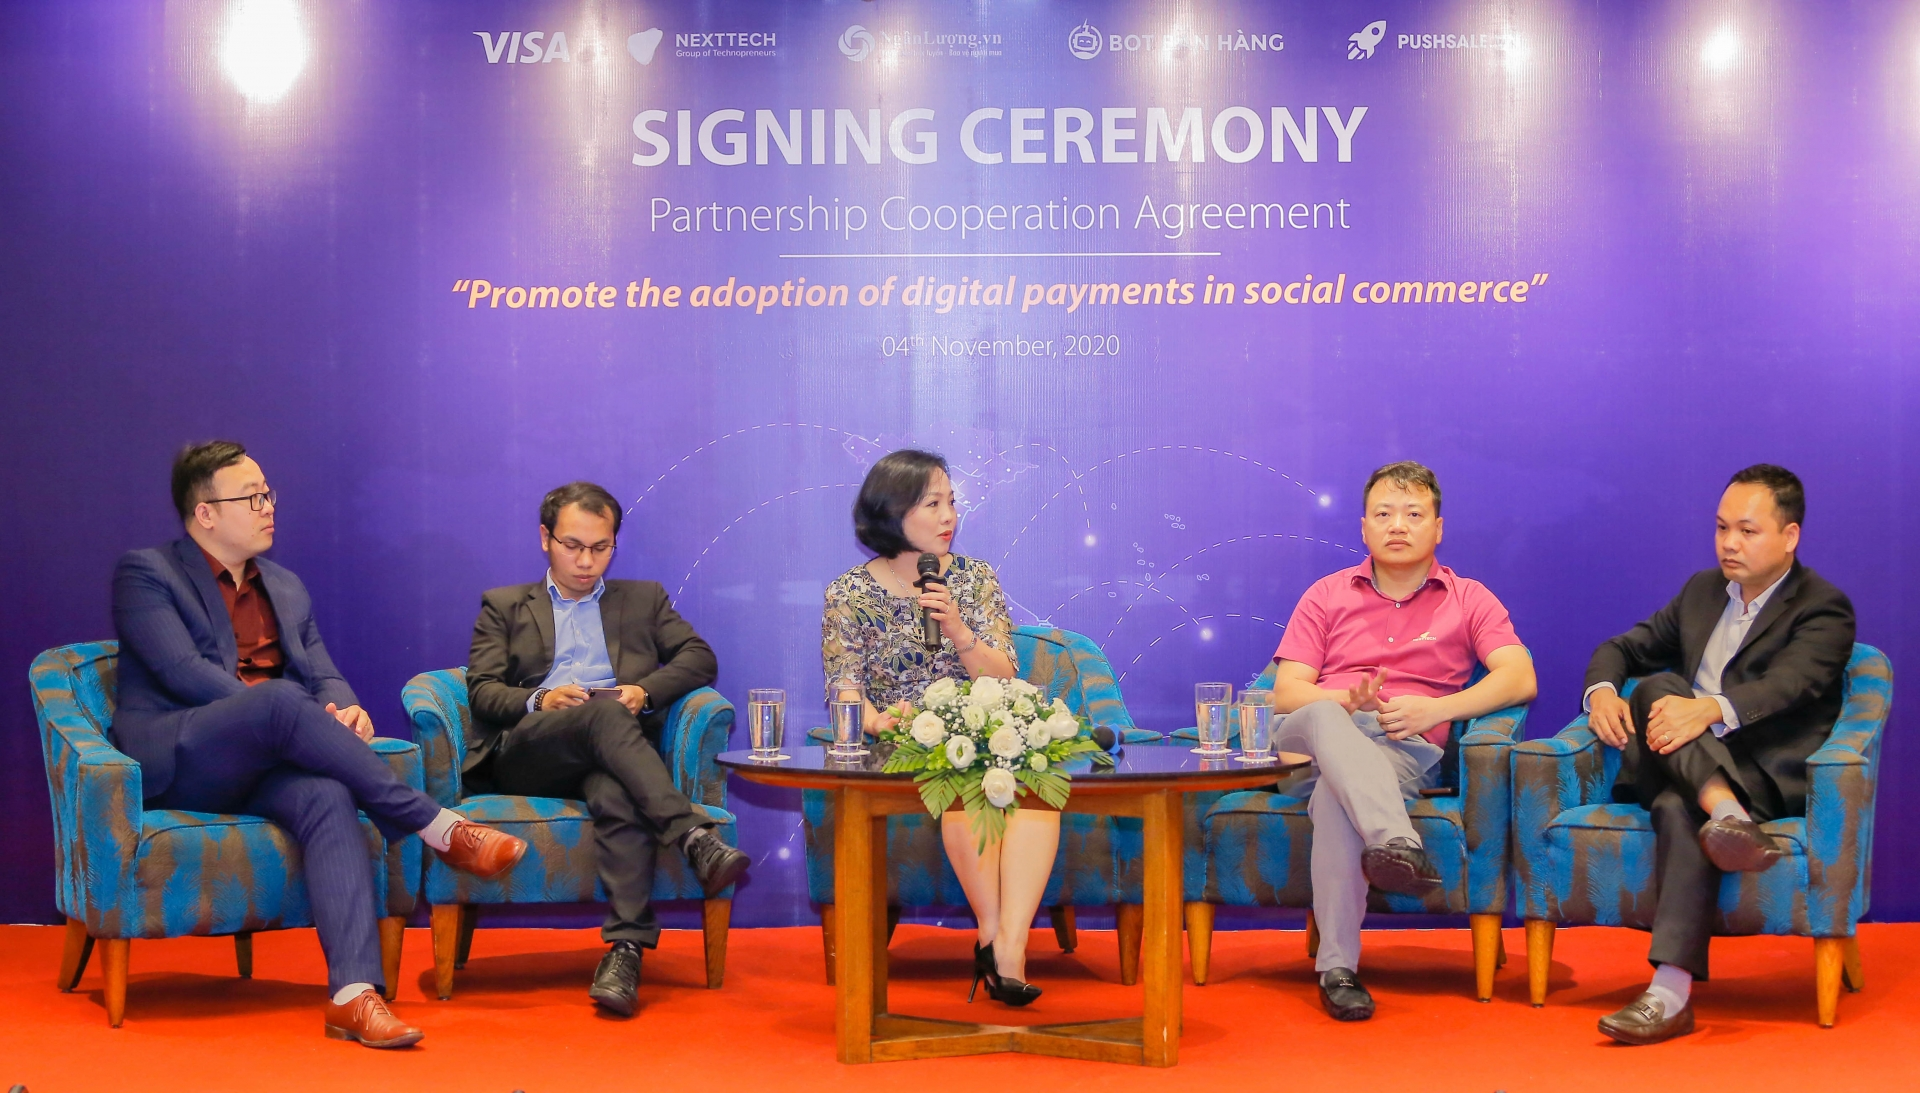 visa and nexttech sign partnership to support social commerce merchants in vietnam